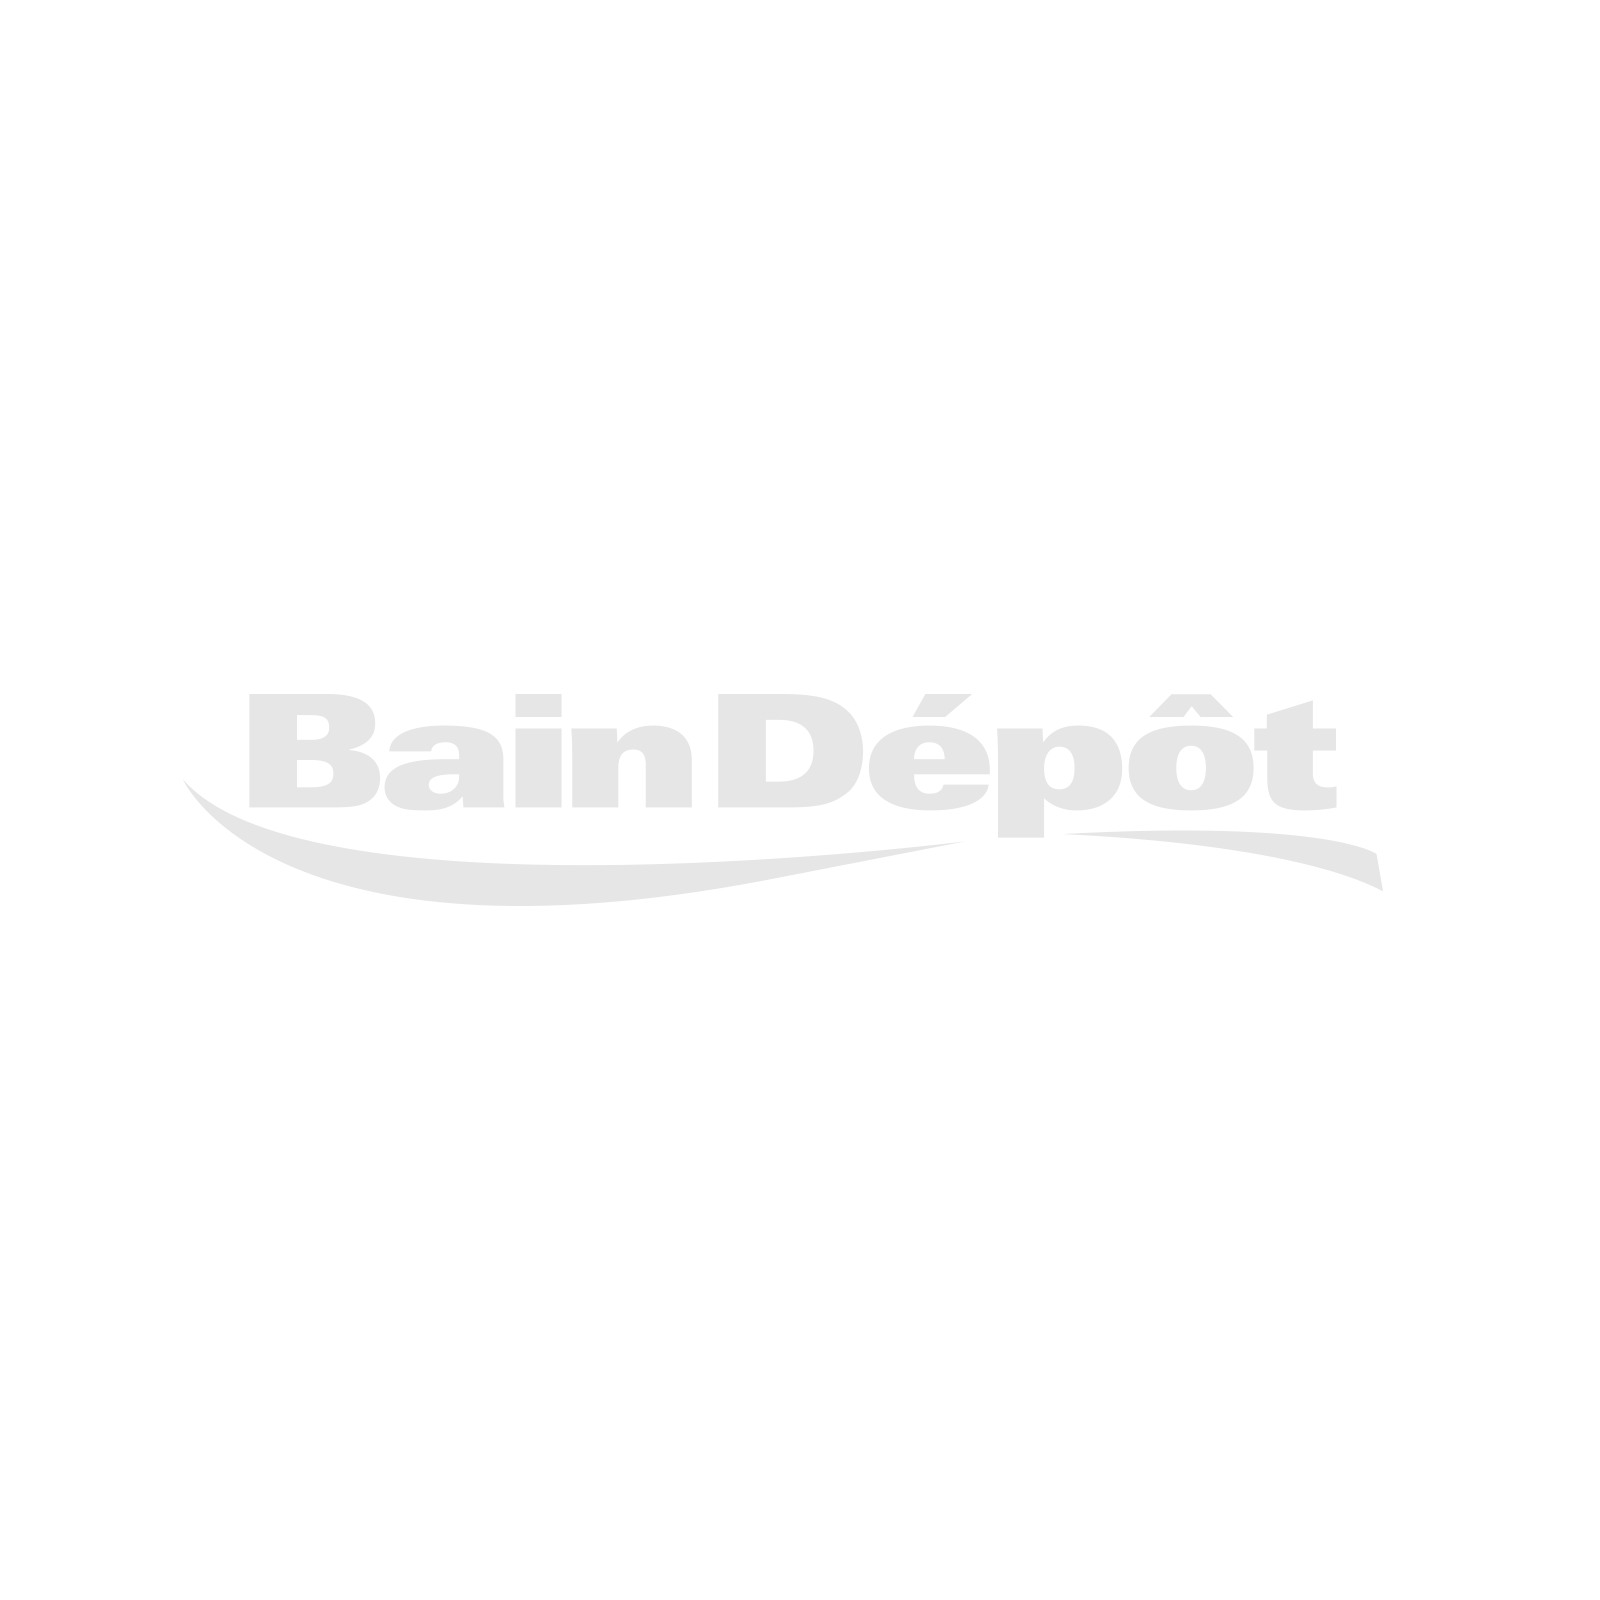 3-piece chrome bathroom accessories kit